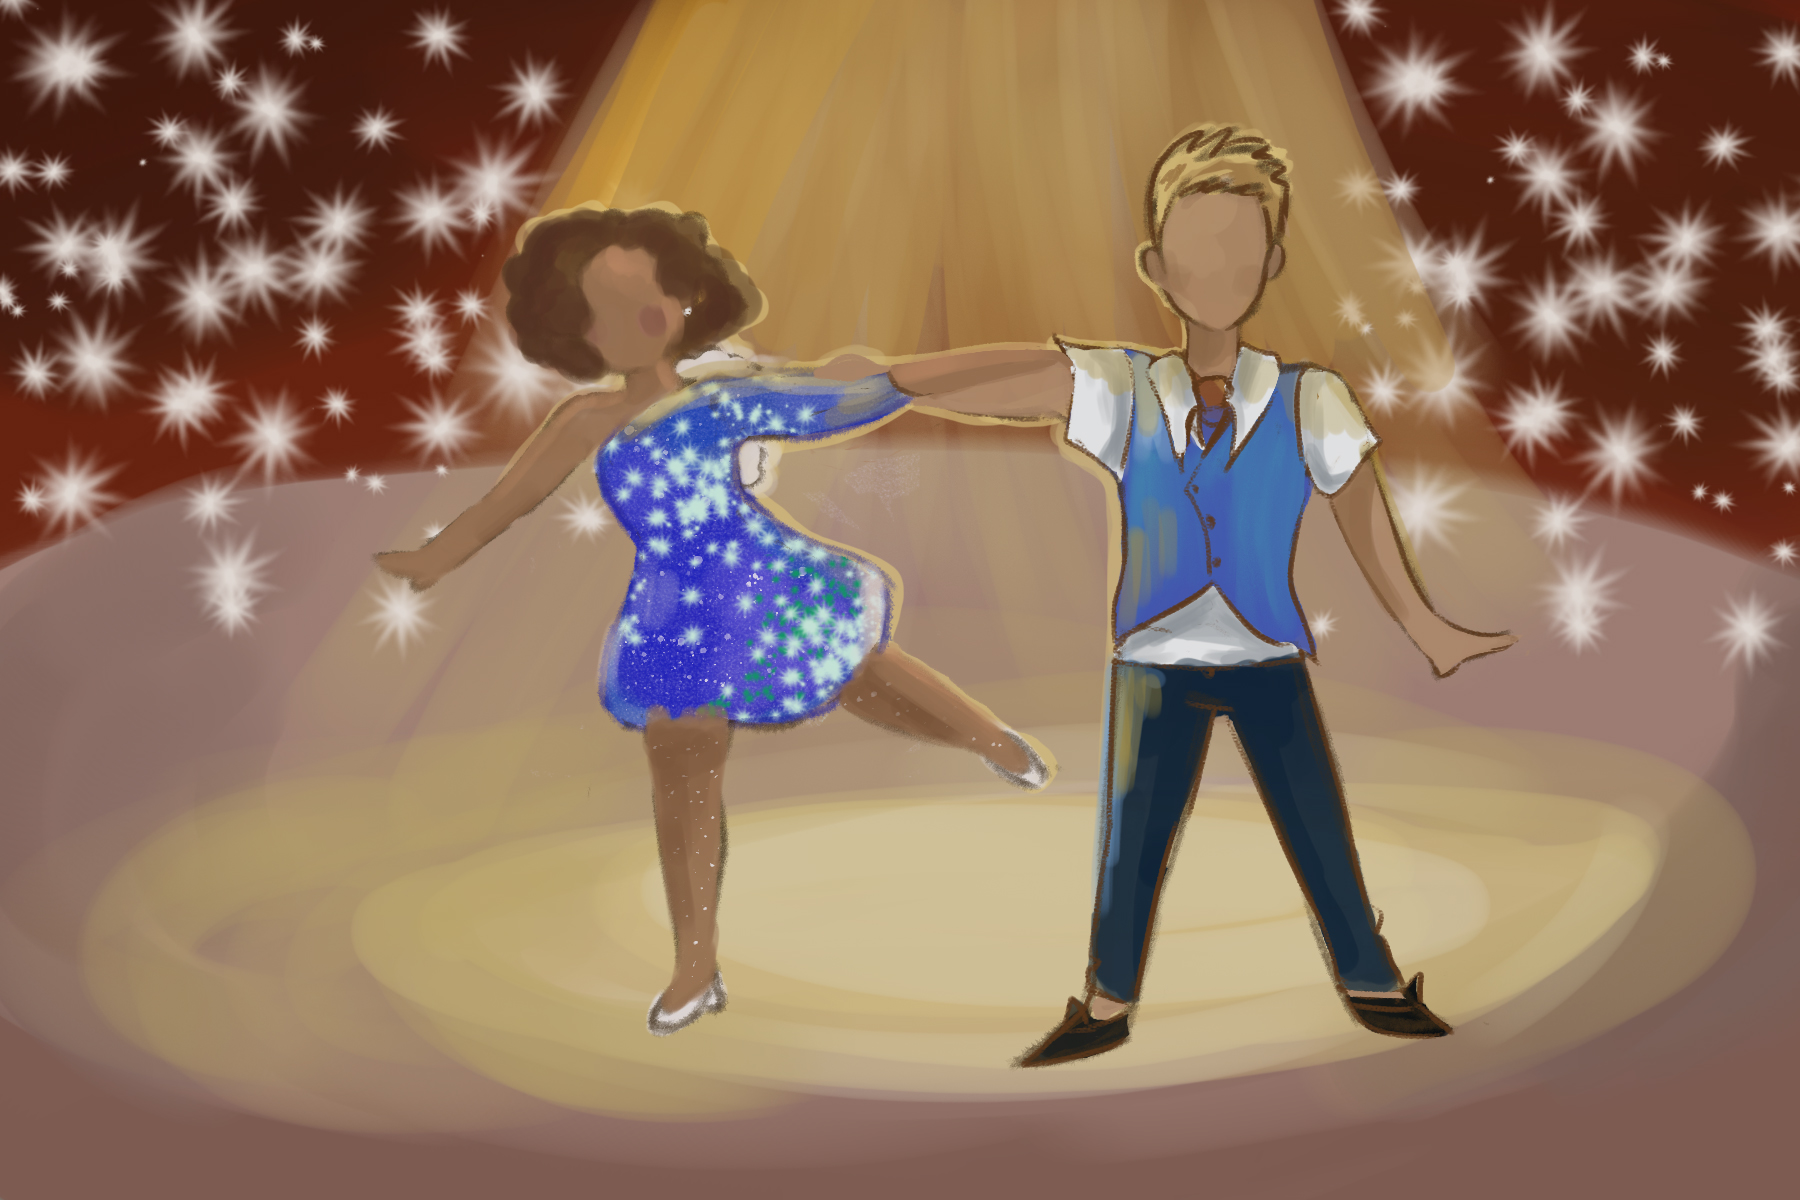 Dancing With The Stars illustration by Ashawna Linyard